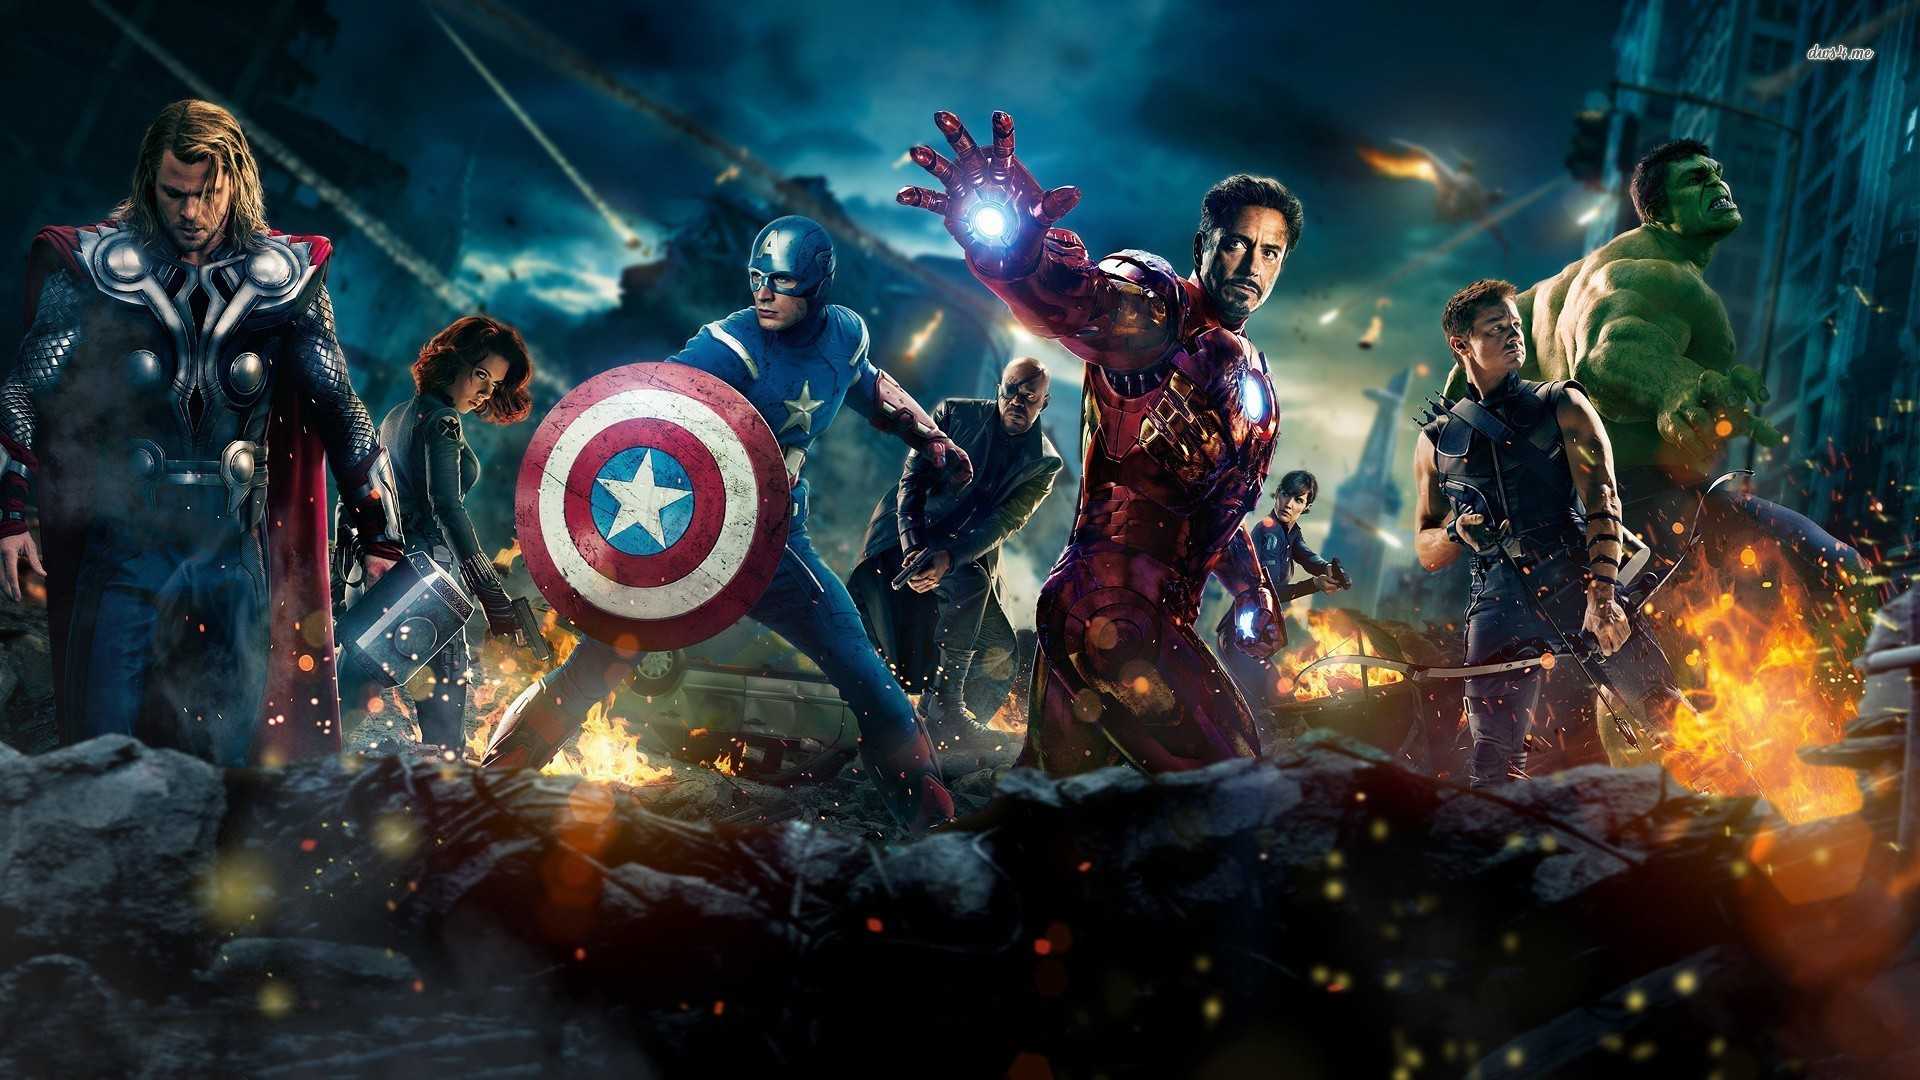 1920x1080 The Avengers wallpaper 1280x800 The Avengers wallpaper 1366x768 The .